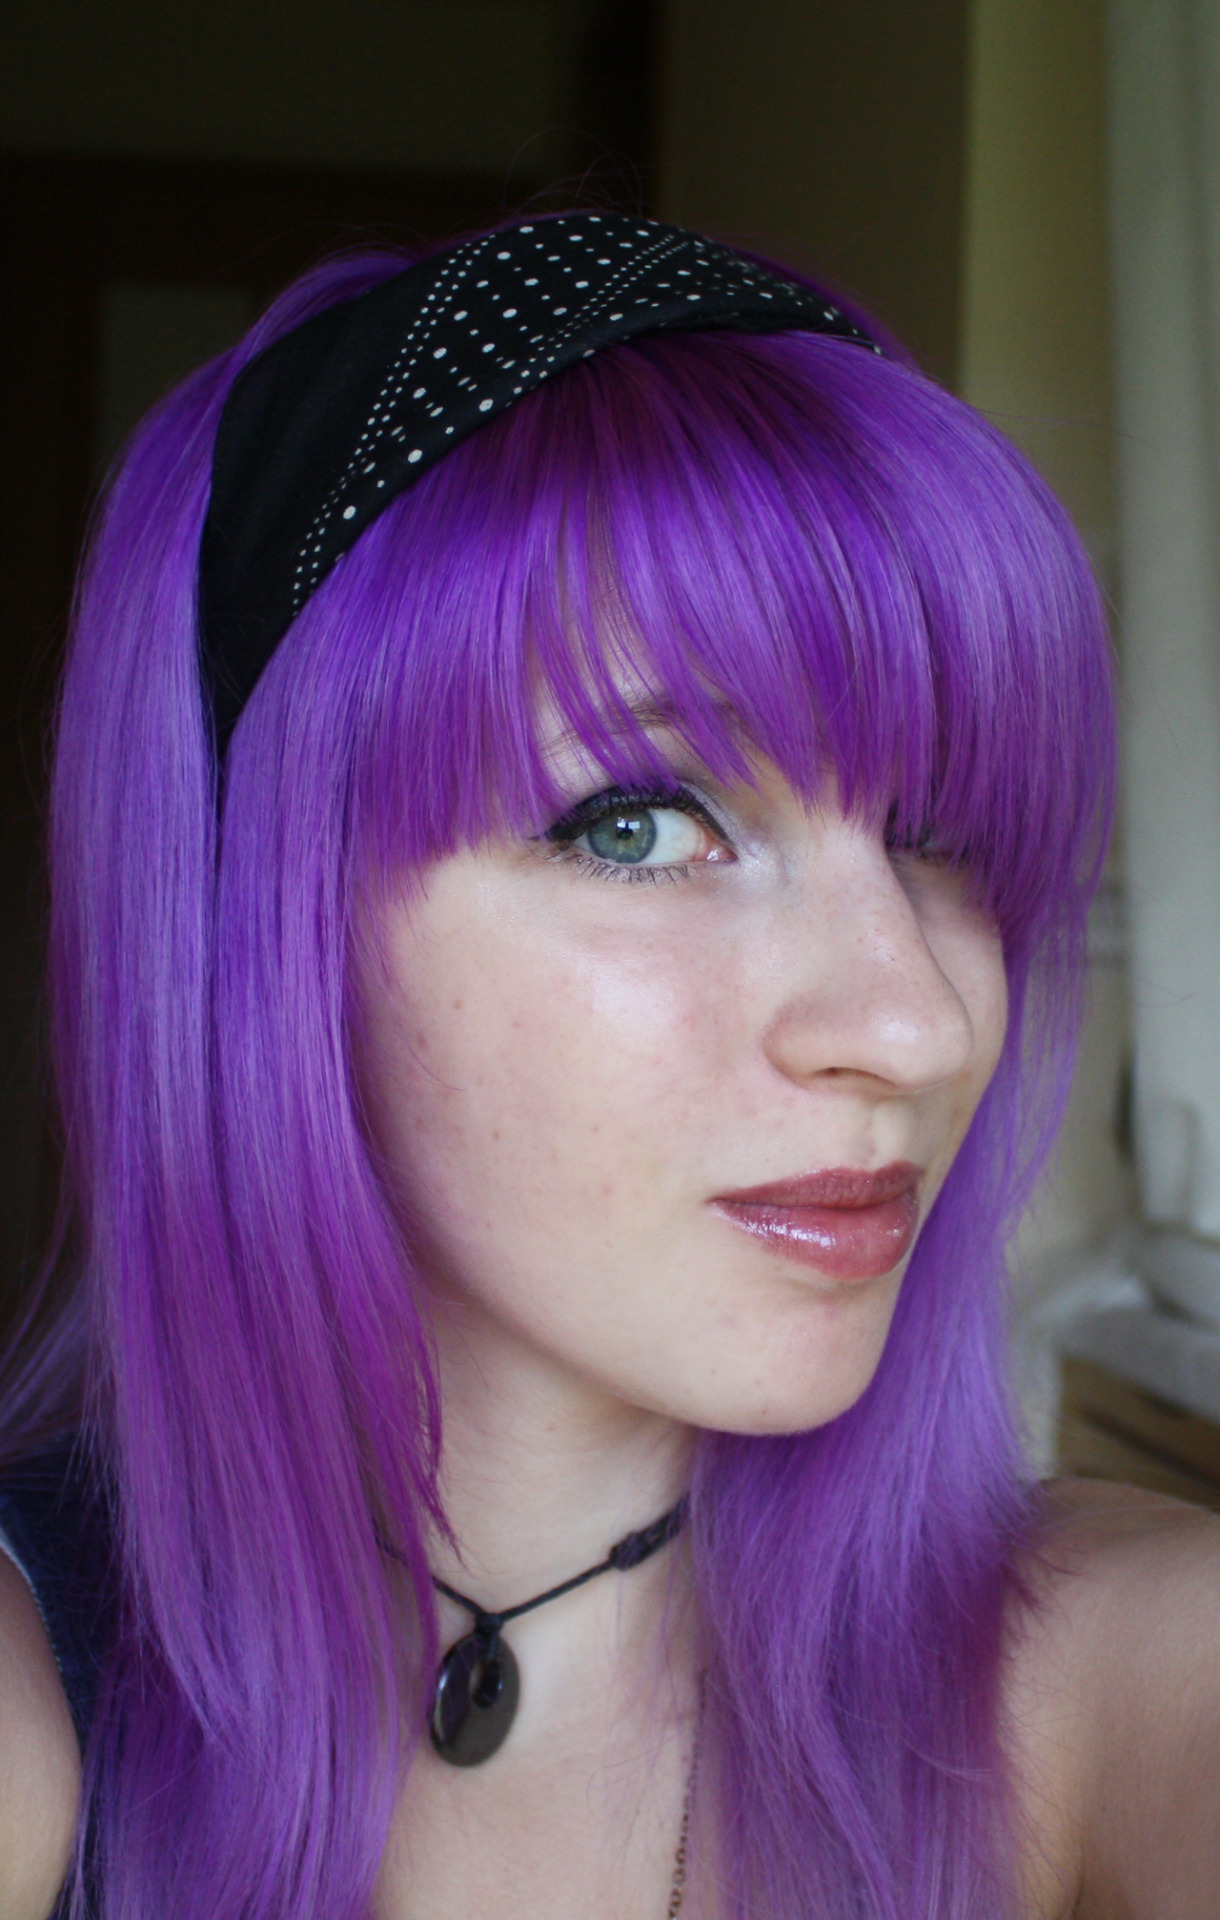 funkyhairinspo:  happycolorfulhair:  My new Hair ll by ~Bobbys-Girl-100  Reblog. Pretty lilac hair with bangs.